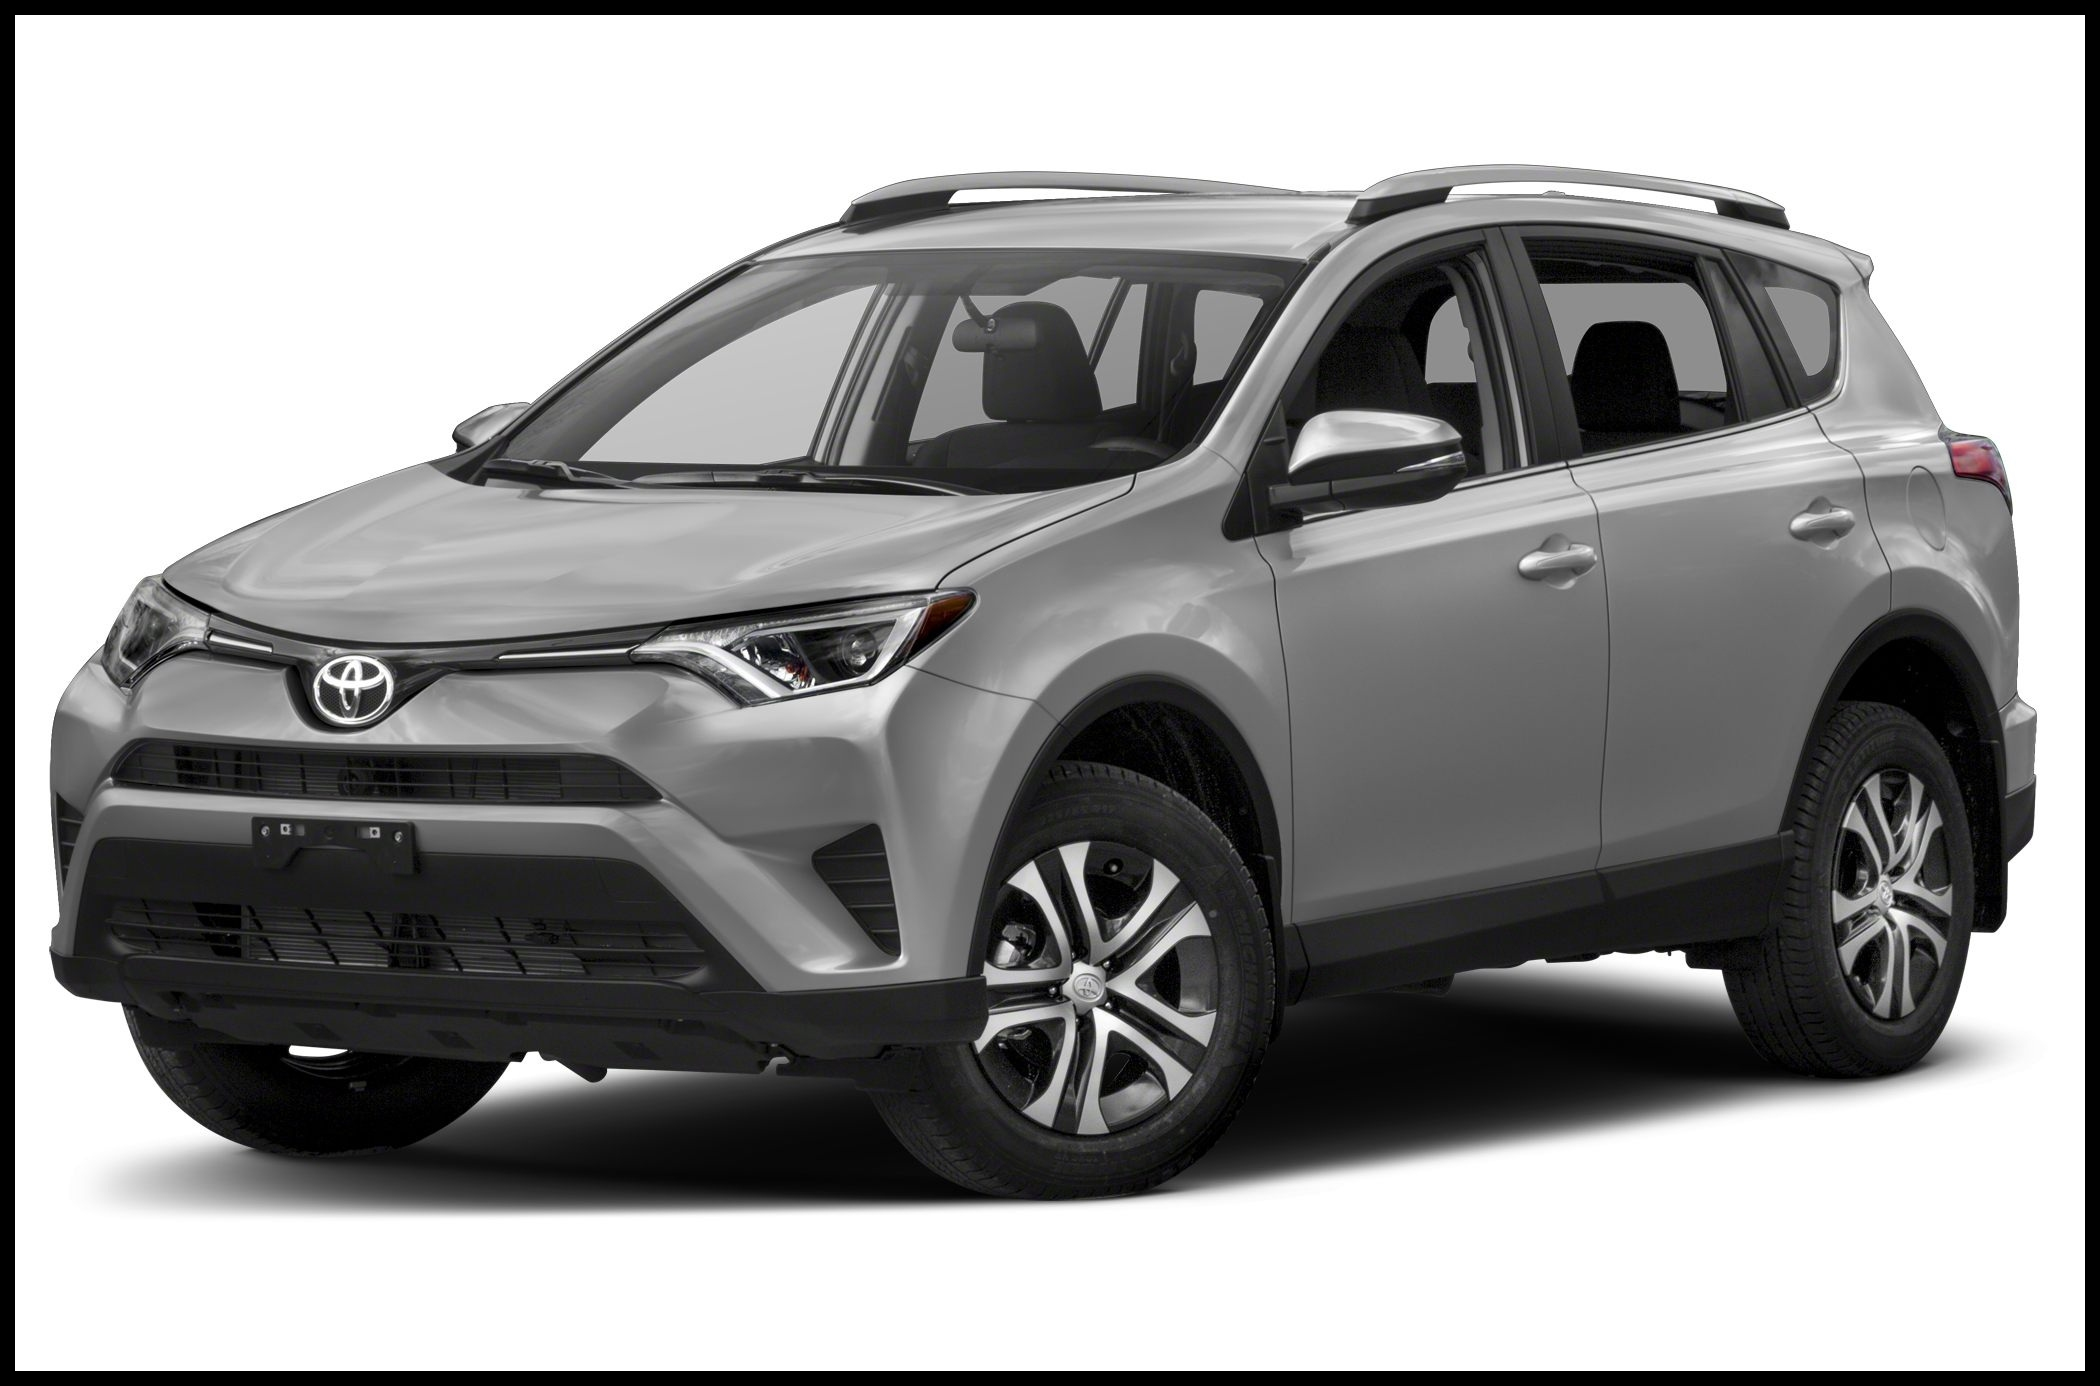 New 2017 toyota Rav4 New Car Test Drive